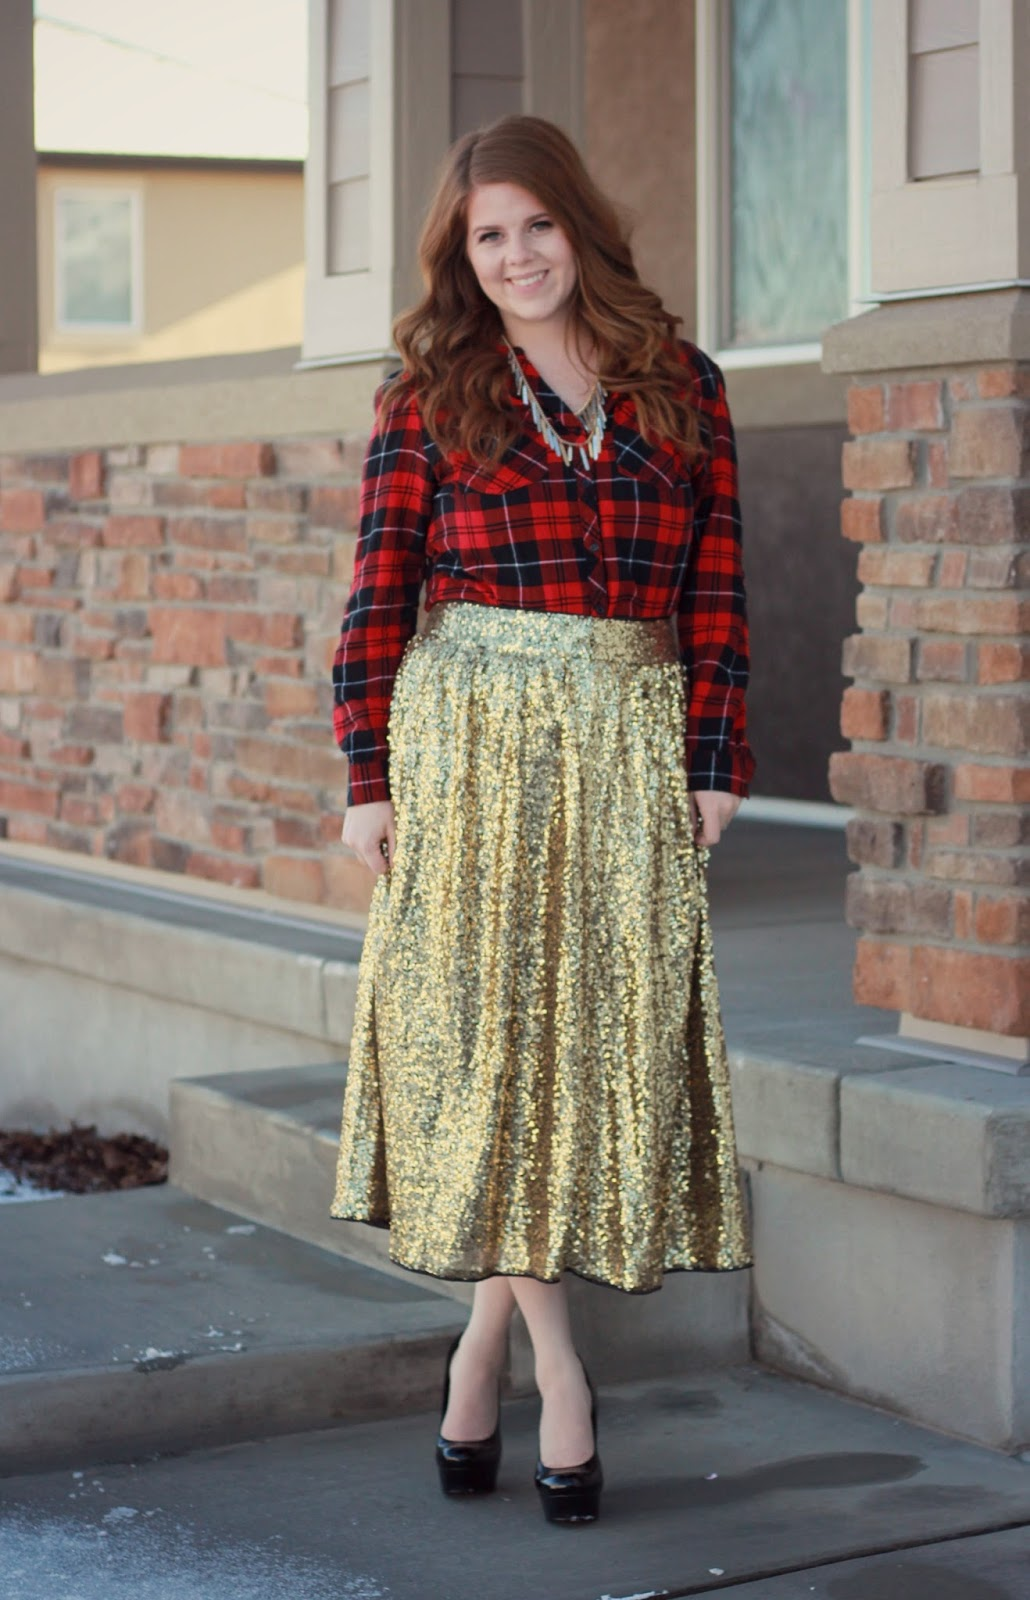 Gold sequin skit and red plaid top